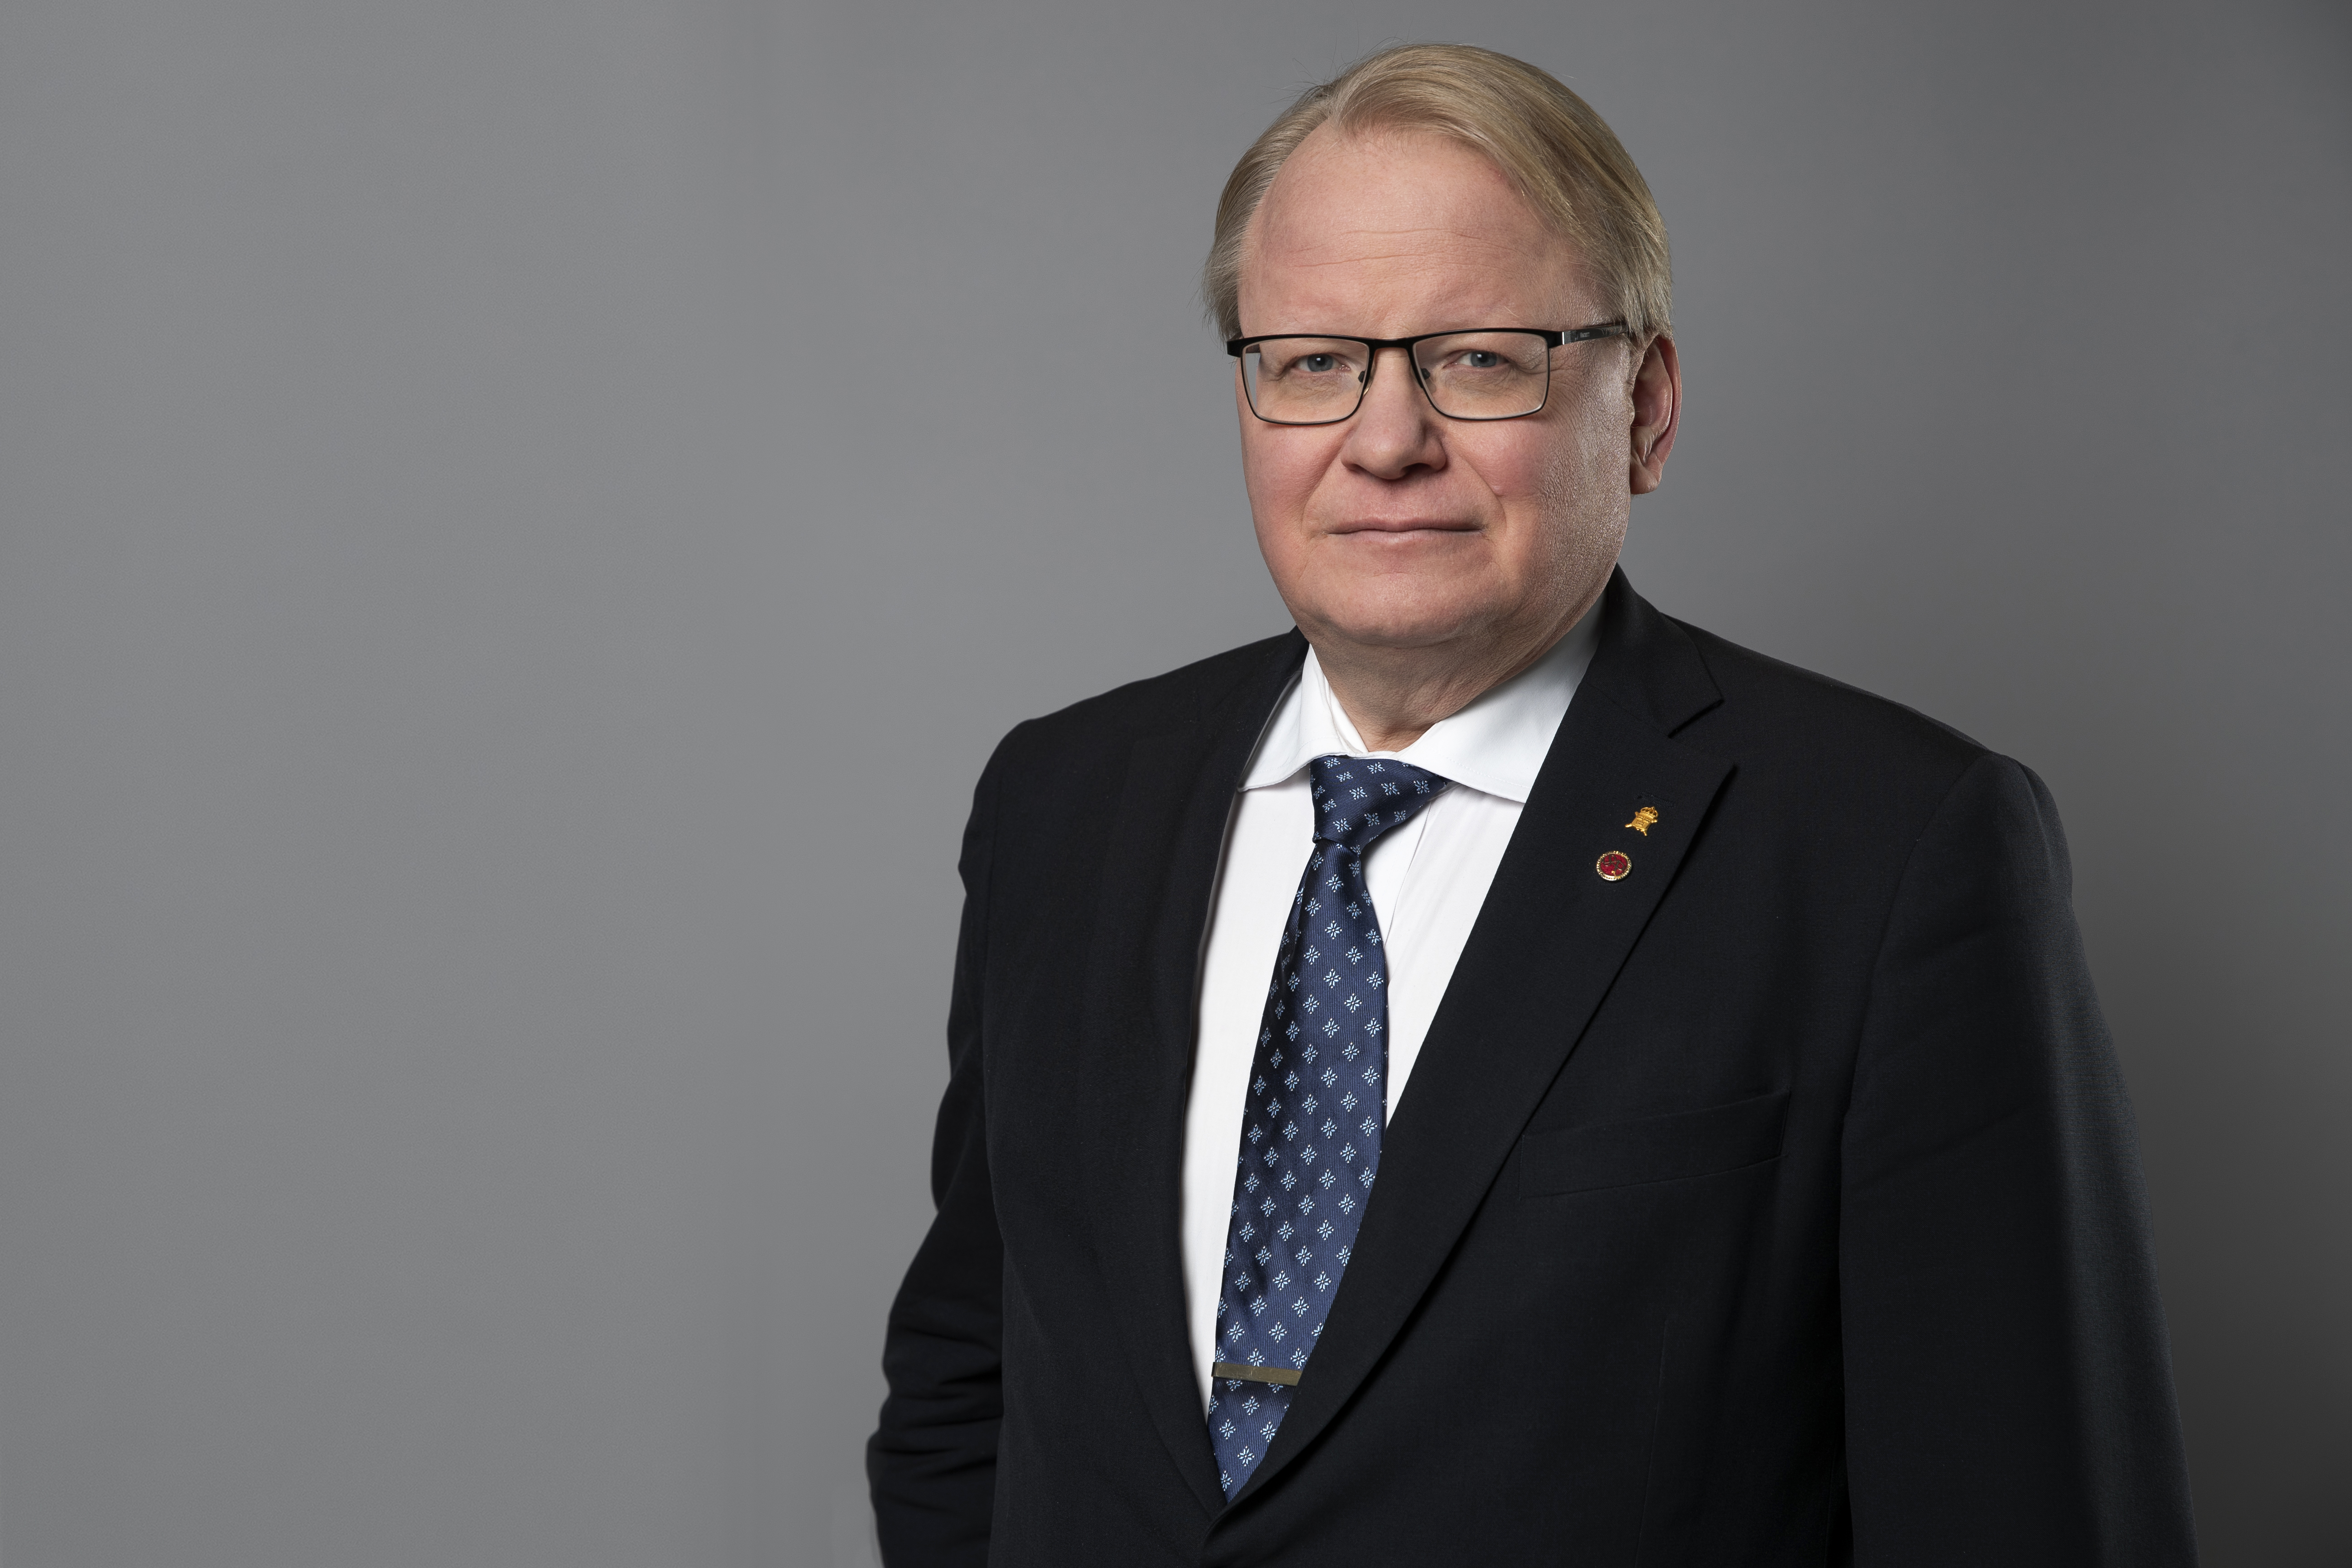 Portrait of Peter Hultqvist